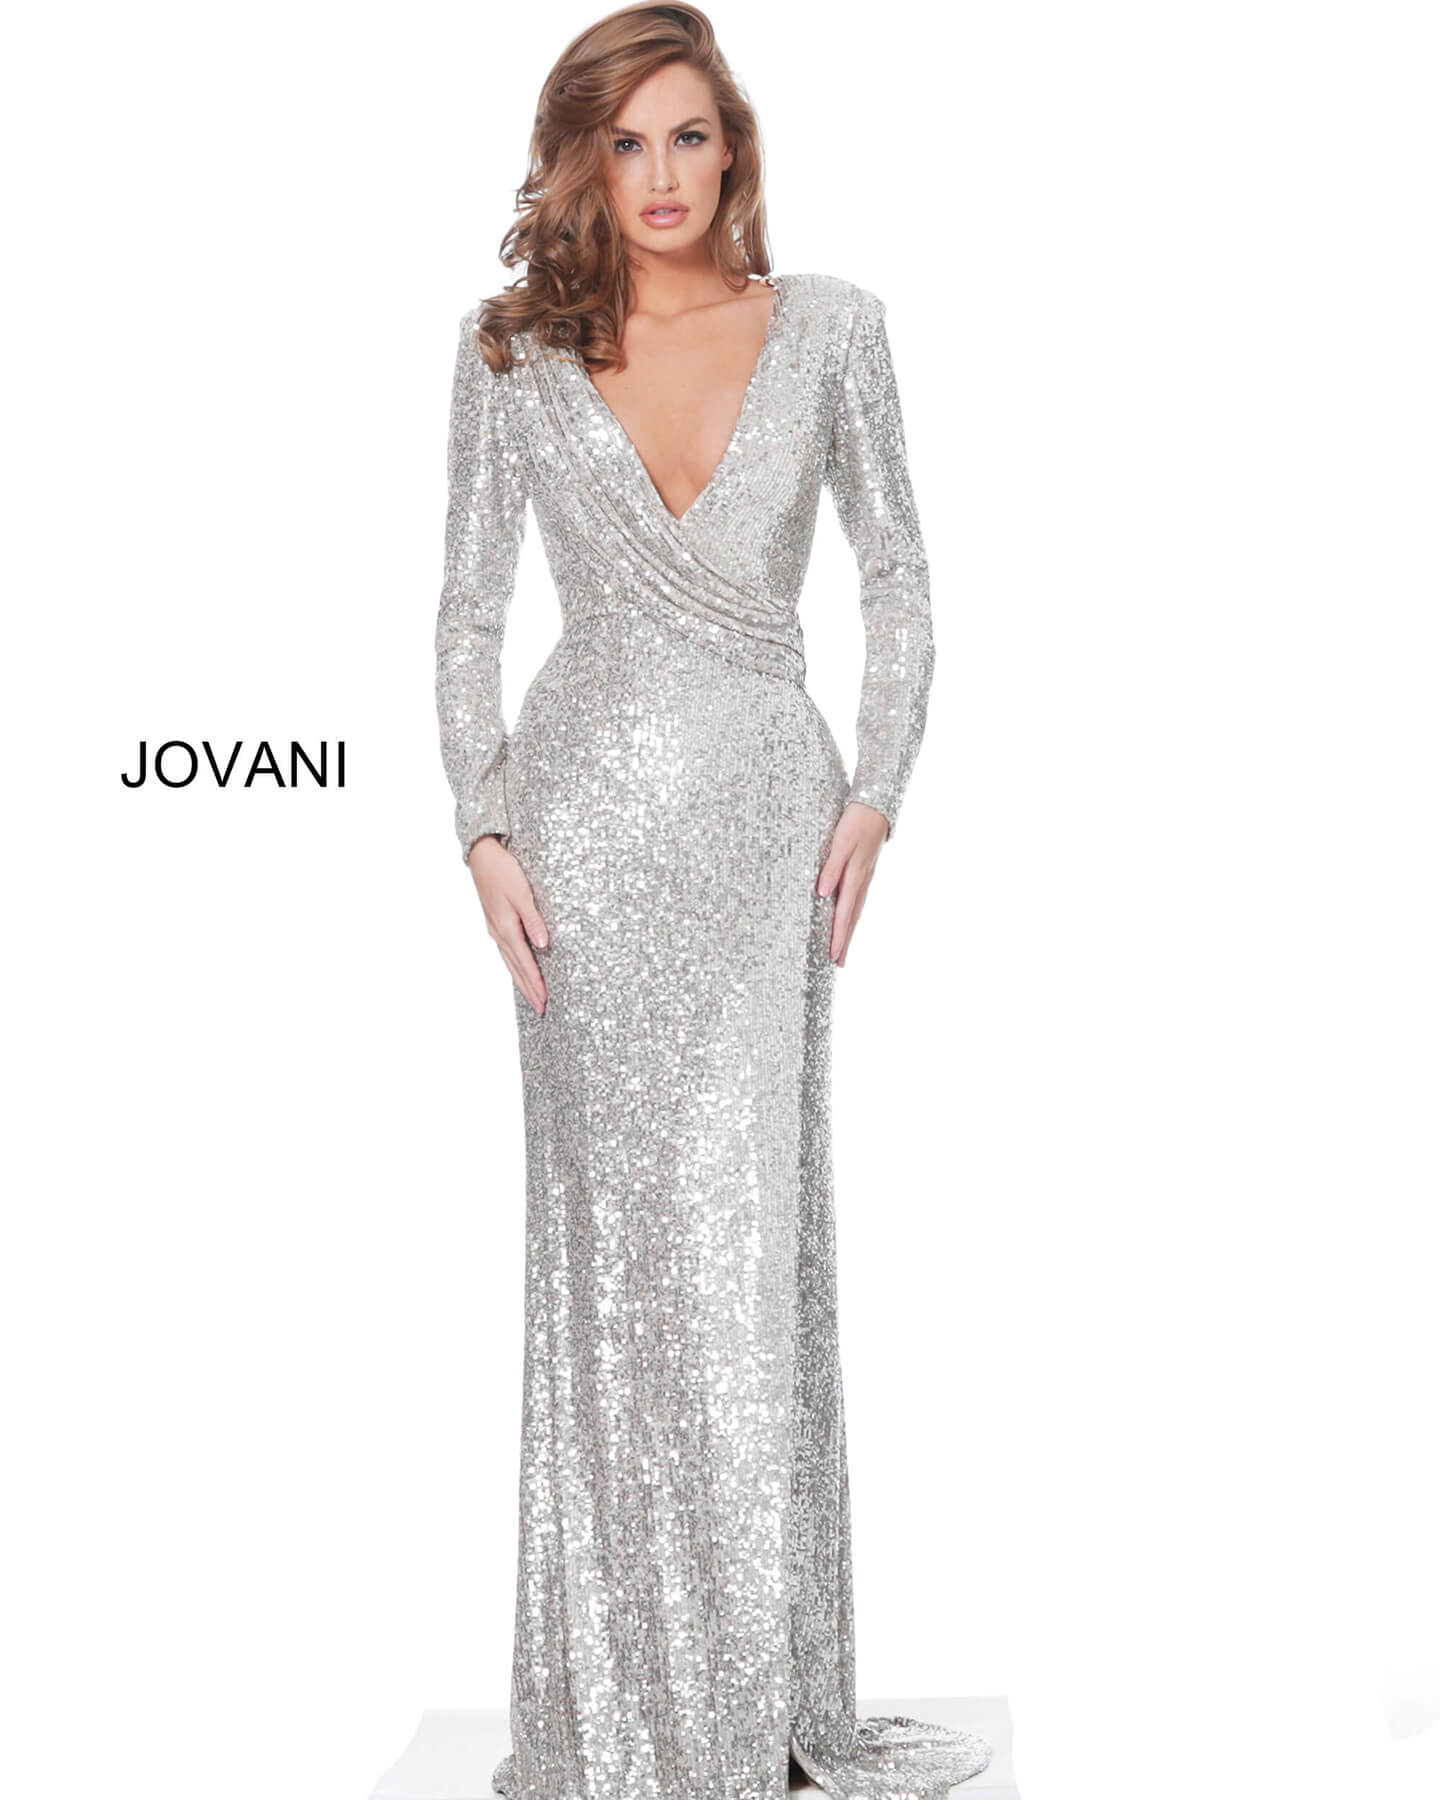 jovani Jovani 04886 Nude Silver Sequin V Neck Prom Dress